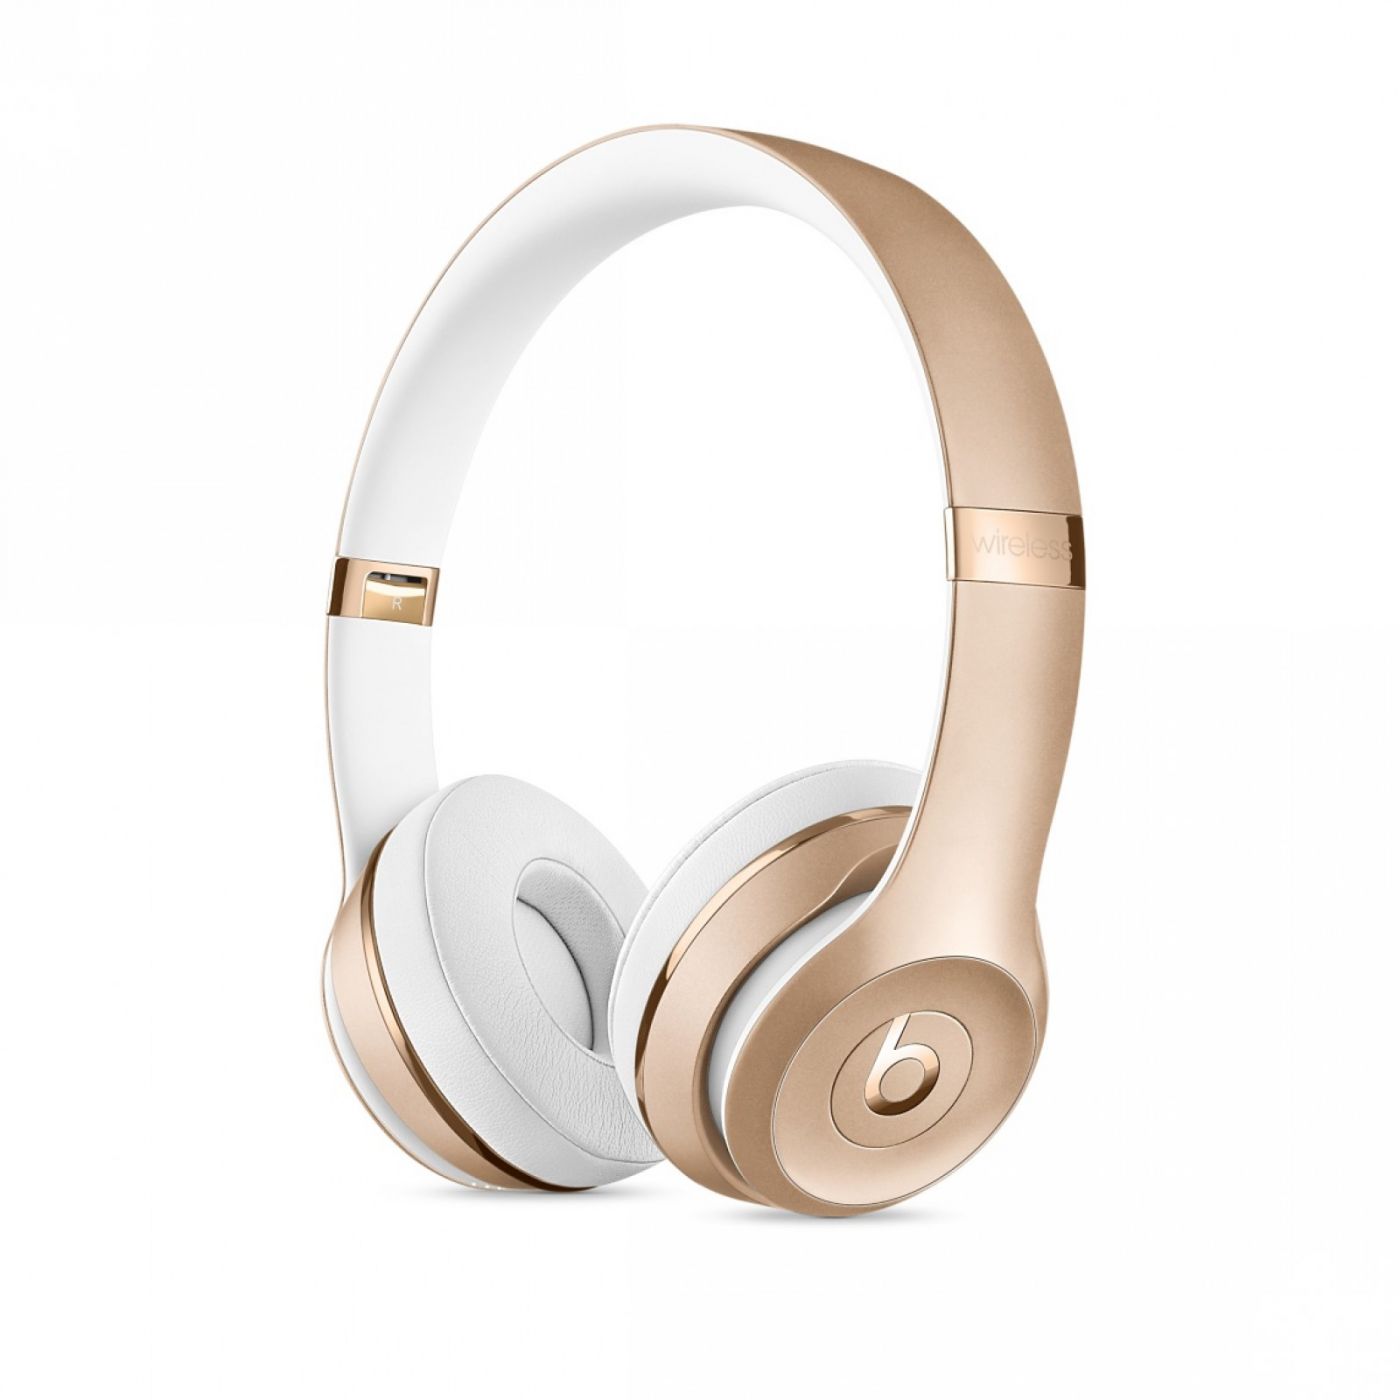 Beats Solo3 Wireless Headphones Matte Gold.